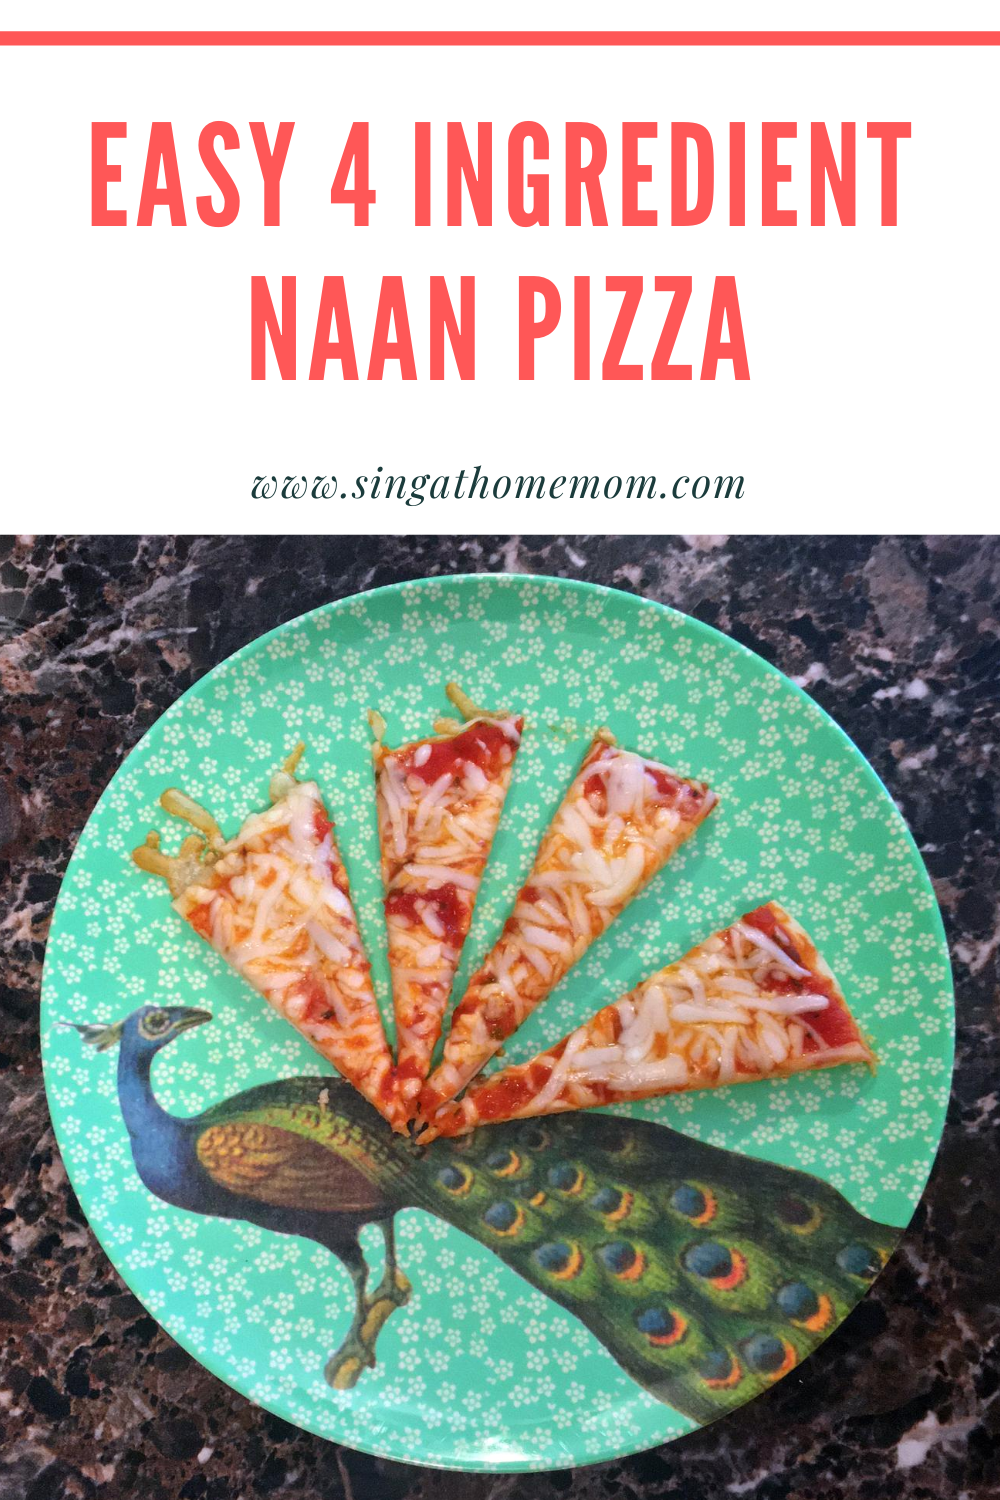 Need a quick and easy recipe that the kids will LOVE? Try this 4 ingredient one pan pizza recipe using naan bread!